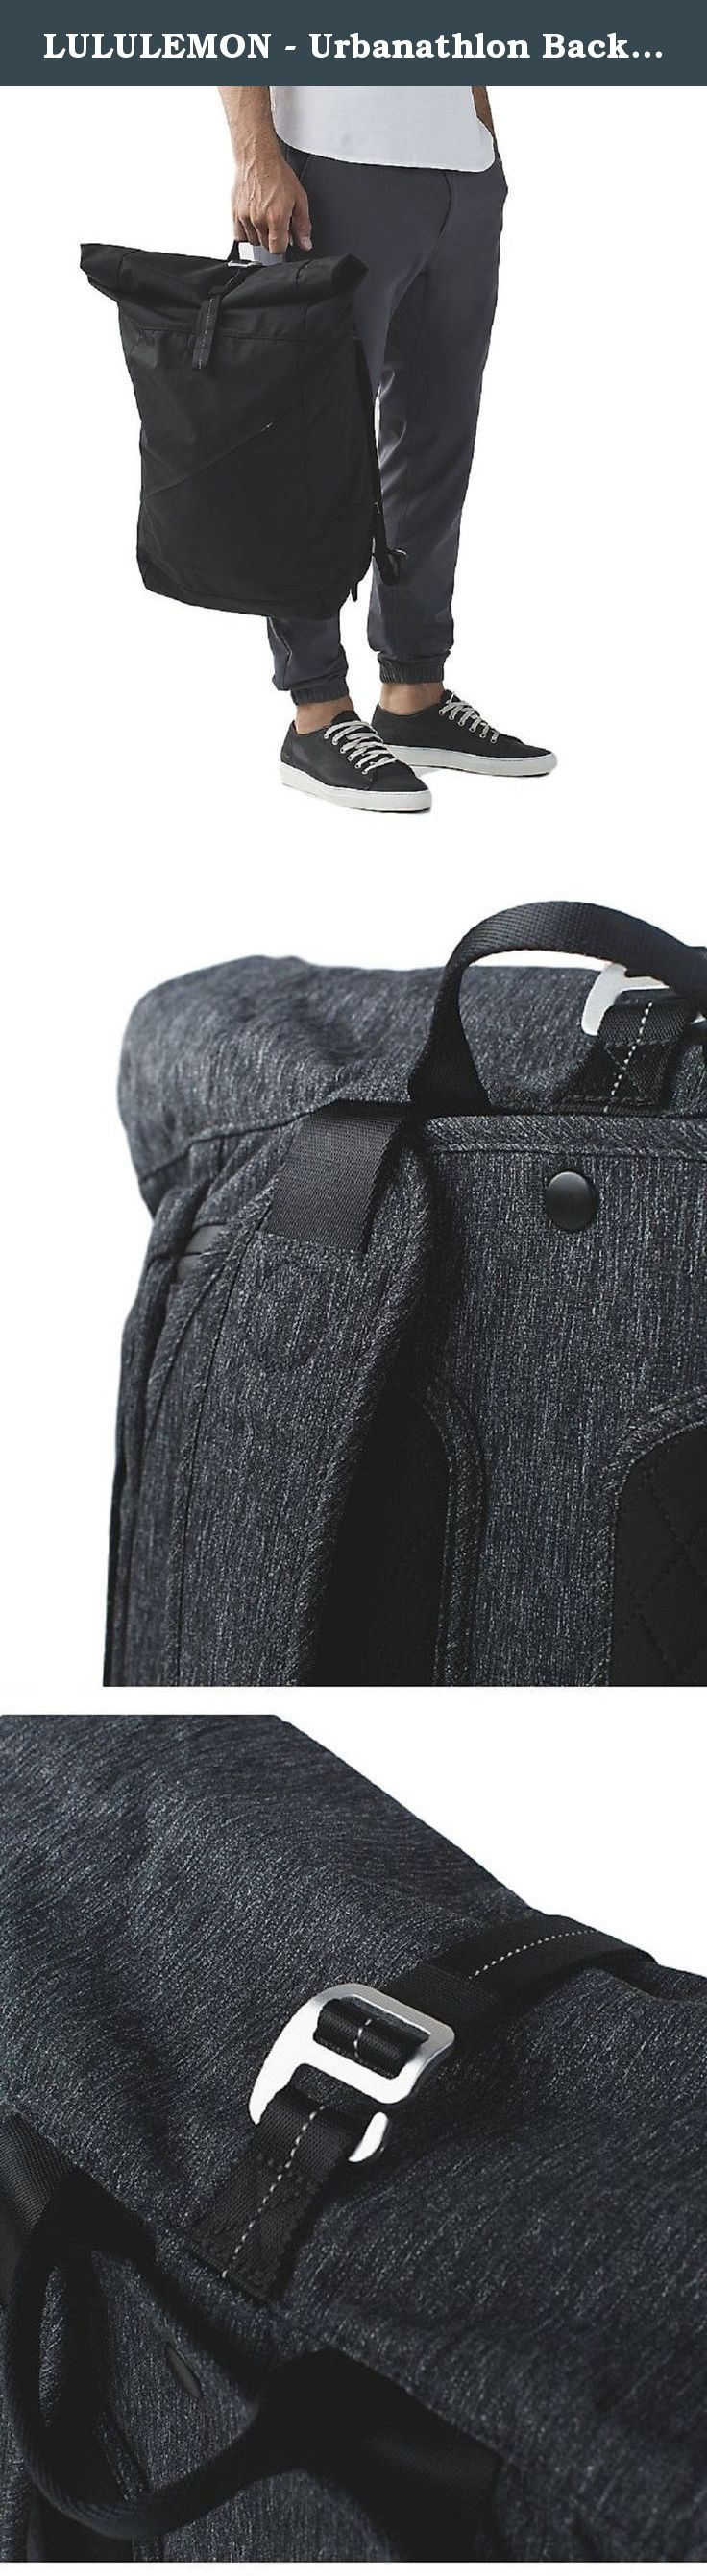 """LULULEMON - Urbanathlon Backpack - Black only - O/S. Fabric is durable and water repellent. The rolltop and clip closure helps keep your gear in and water out. Soft, Tricot fabric lined pocket for your sunglasses and phone. Unsnap the removable bag and cinch the draw cord to keep sweaty gear separate. Suspended padded sleeve with exterior access fits a 15"""" laptop. Reflective details help keep you on the radar. Zippered side pocket to stash your water bottle or essentials. Tested to hold…"""